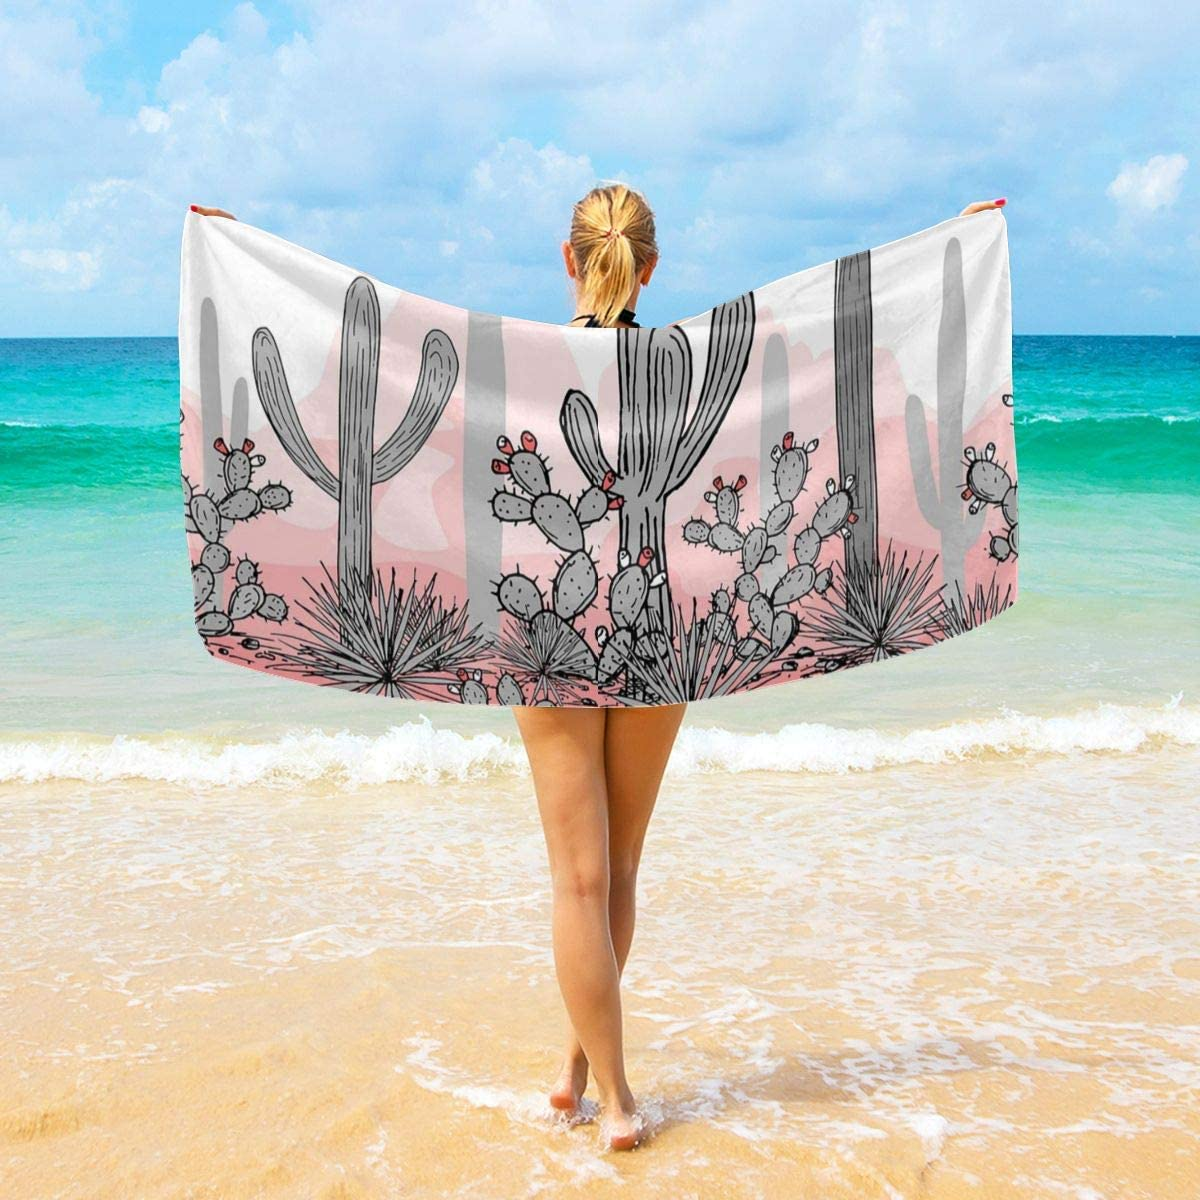 Befectar Pink Cactus Large Decorative Hand Towels Multipurpose for Bathroom Hotel Gym and Spa (32x52 Inches 40x70 Inches)